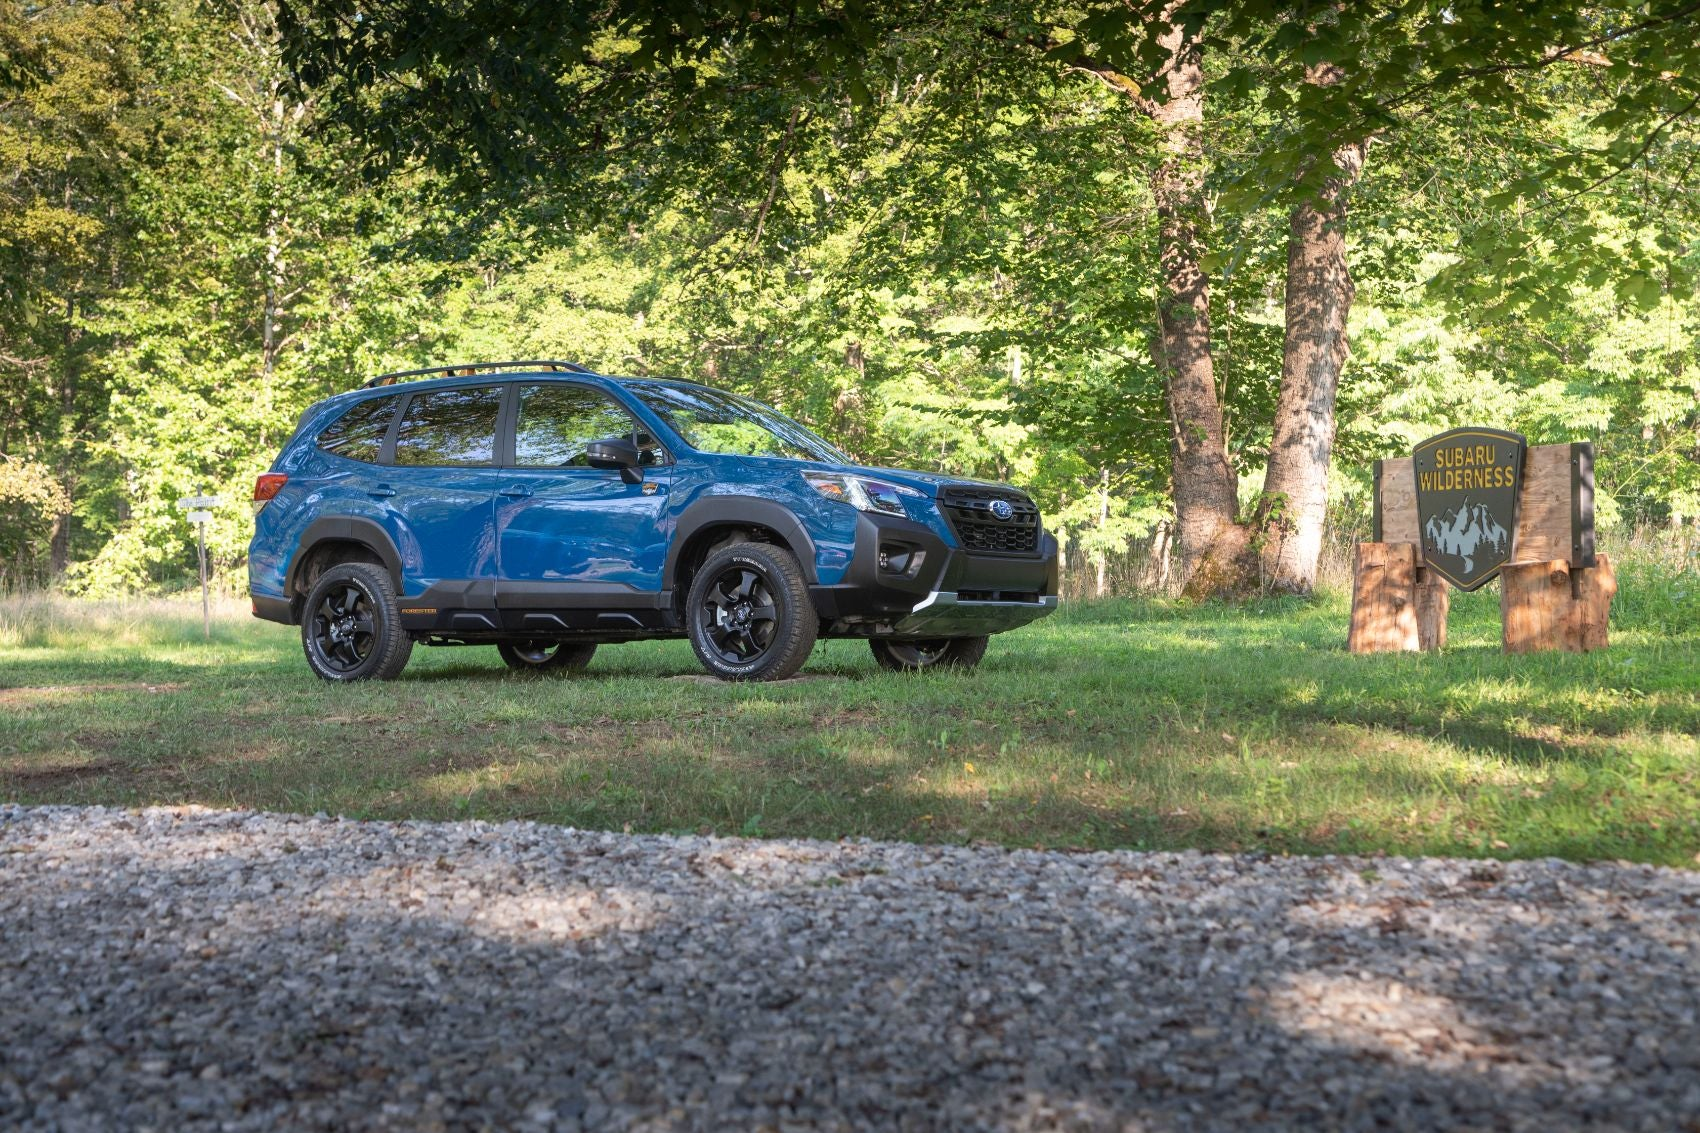 2022 Subaru Forester Overview: Tech & Safety Features, New Wilderness Trim, Pricing & More